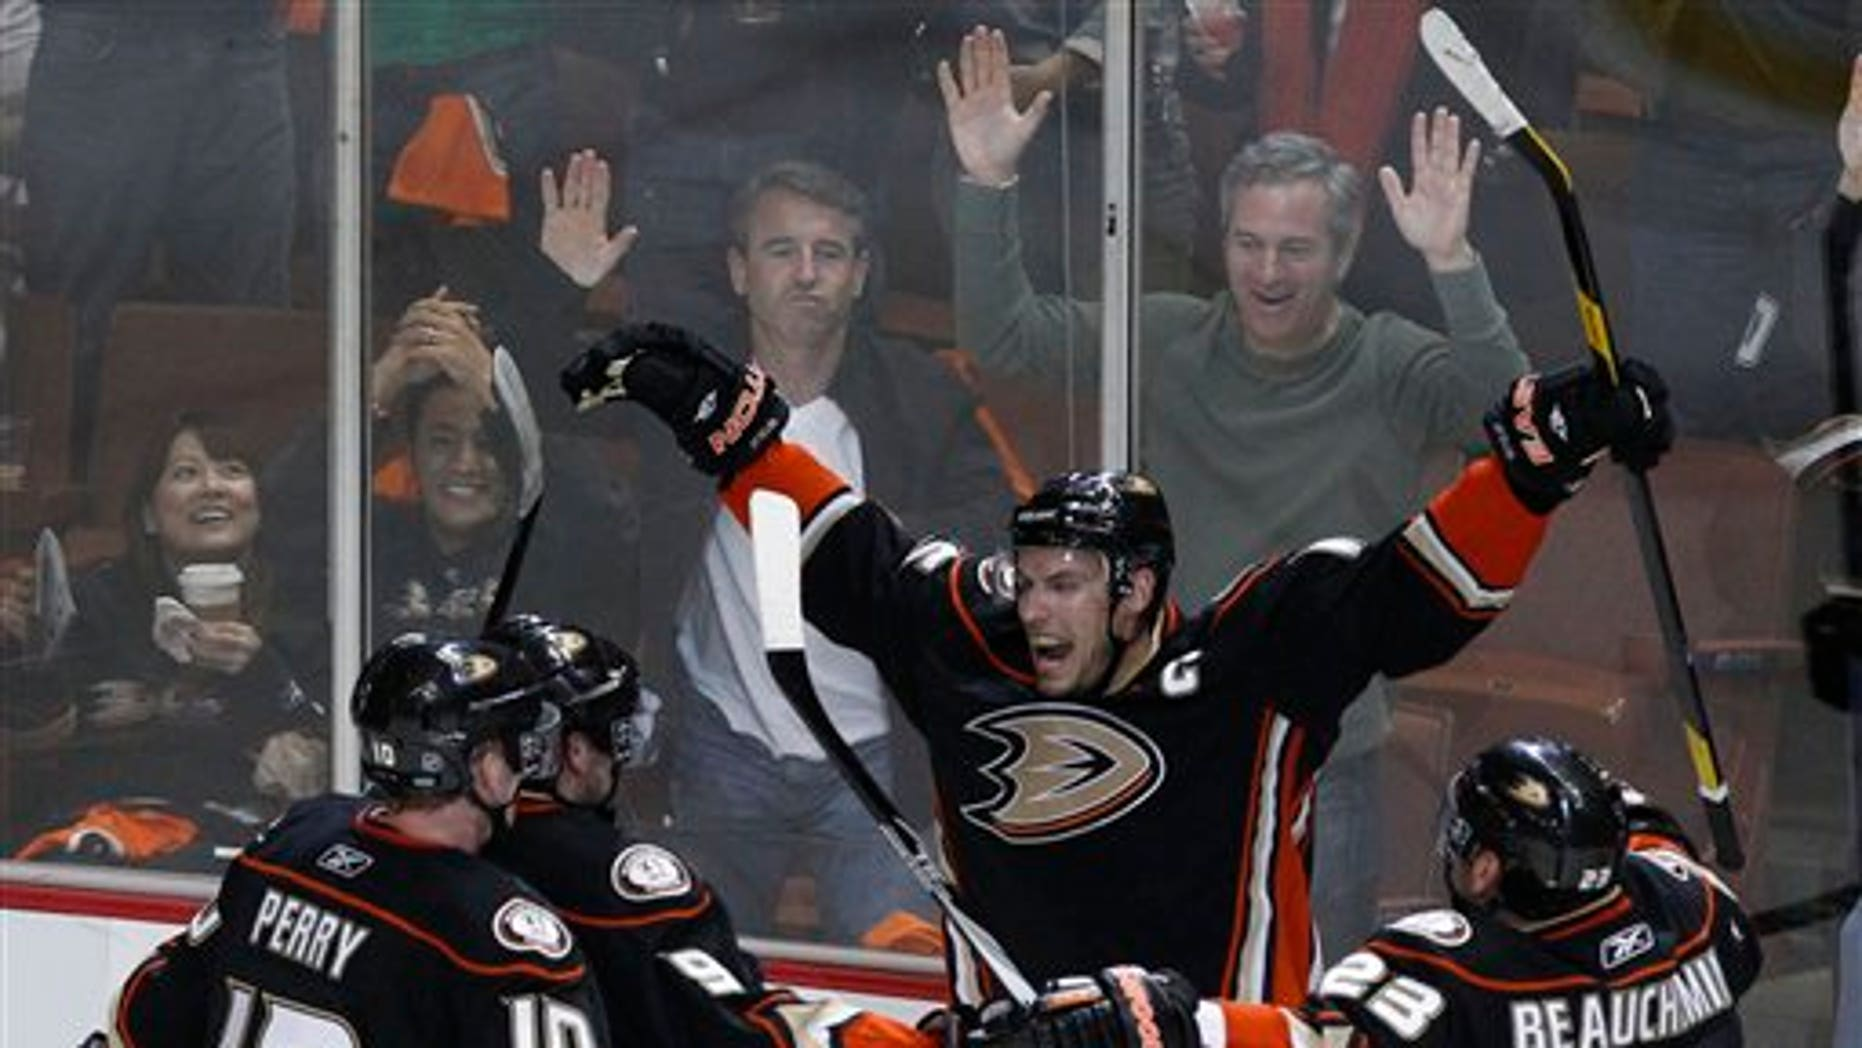 April 15: Anaheim Ducks center Ryan Getzlaf, middle celebrates his goal against the Nashville Predators during the second period of Game 2 of a first-round NHL Stanley Cup playoff hockey series in Anaheim, Calif. (AP)